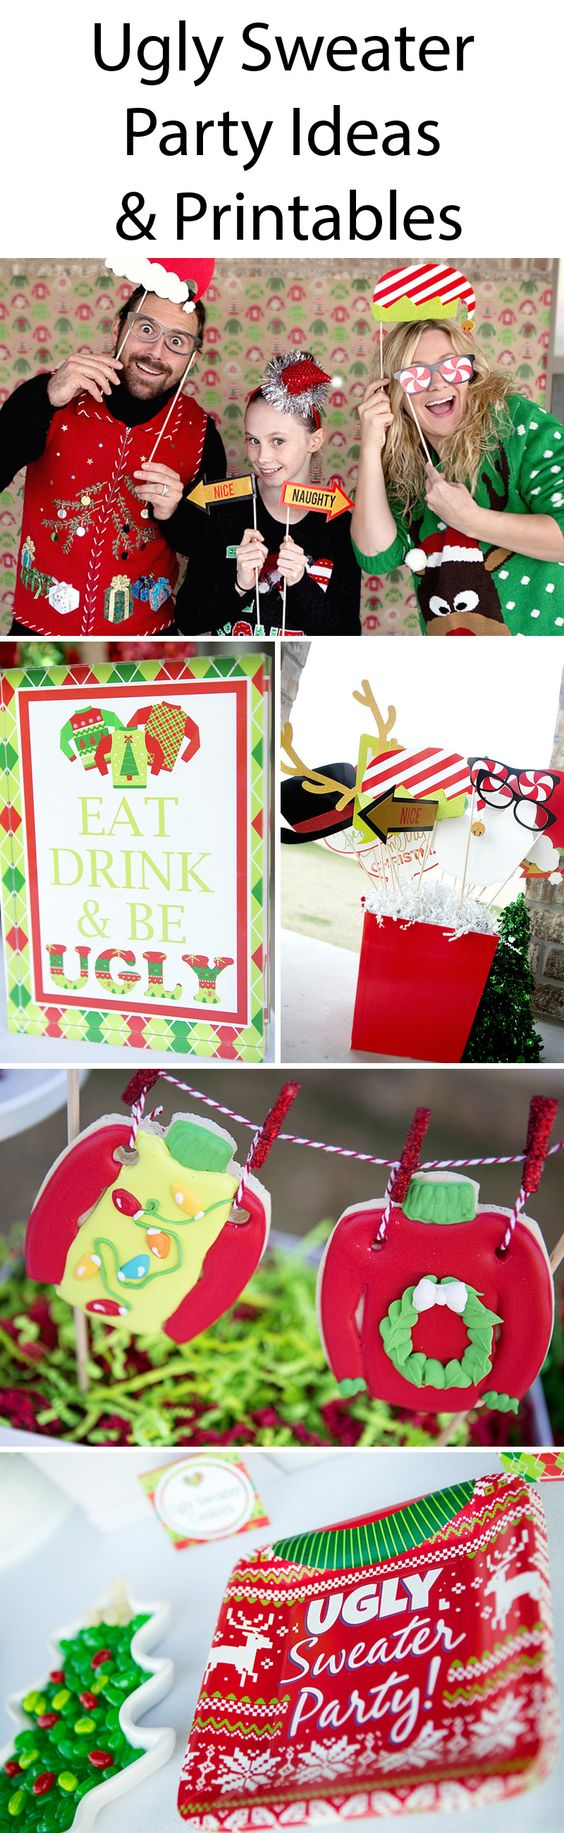 Tacky Christmas Party Ideas Part - 49: Ugly Sweater Party - Tacky Sweater Christmas Party Ideas